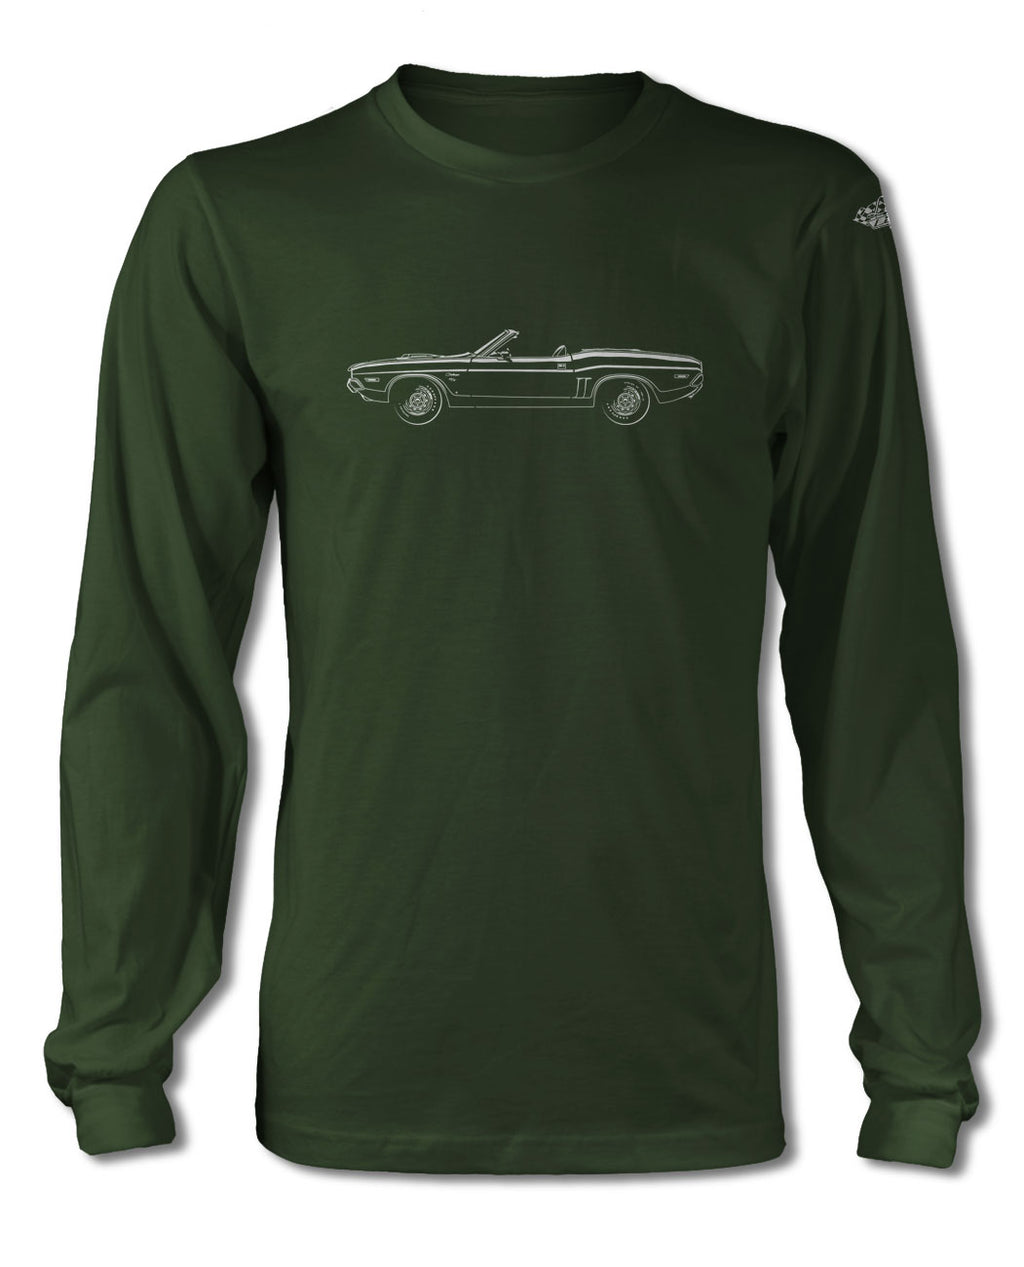 1971 Dodge Challenger RT Convertible Shaker Hood T-Shirt - Long Sleeves - Side View